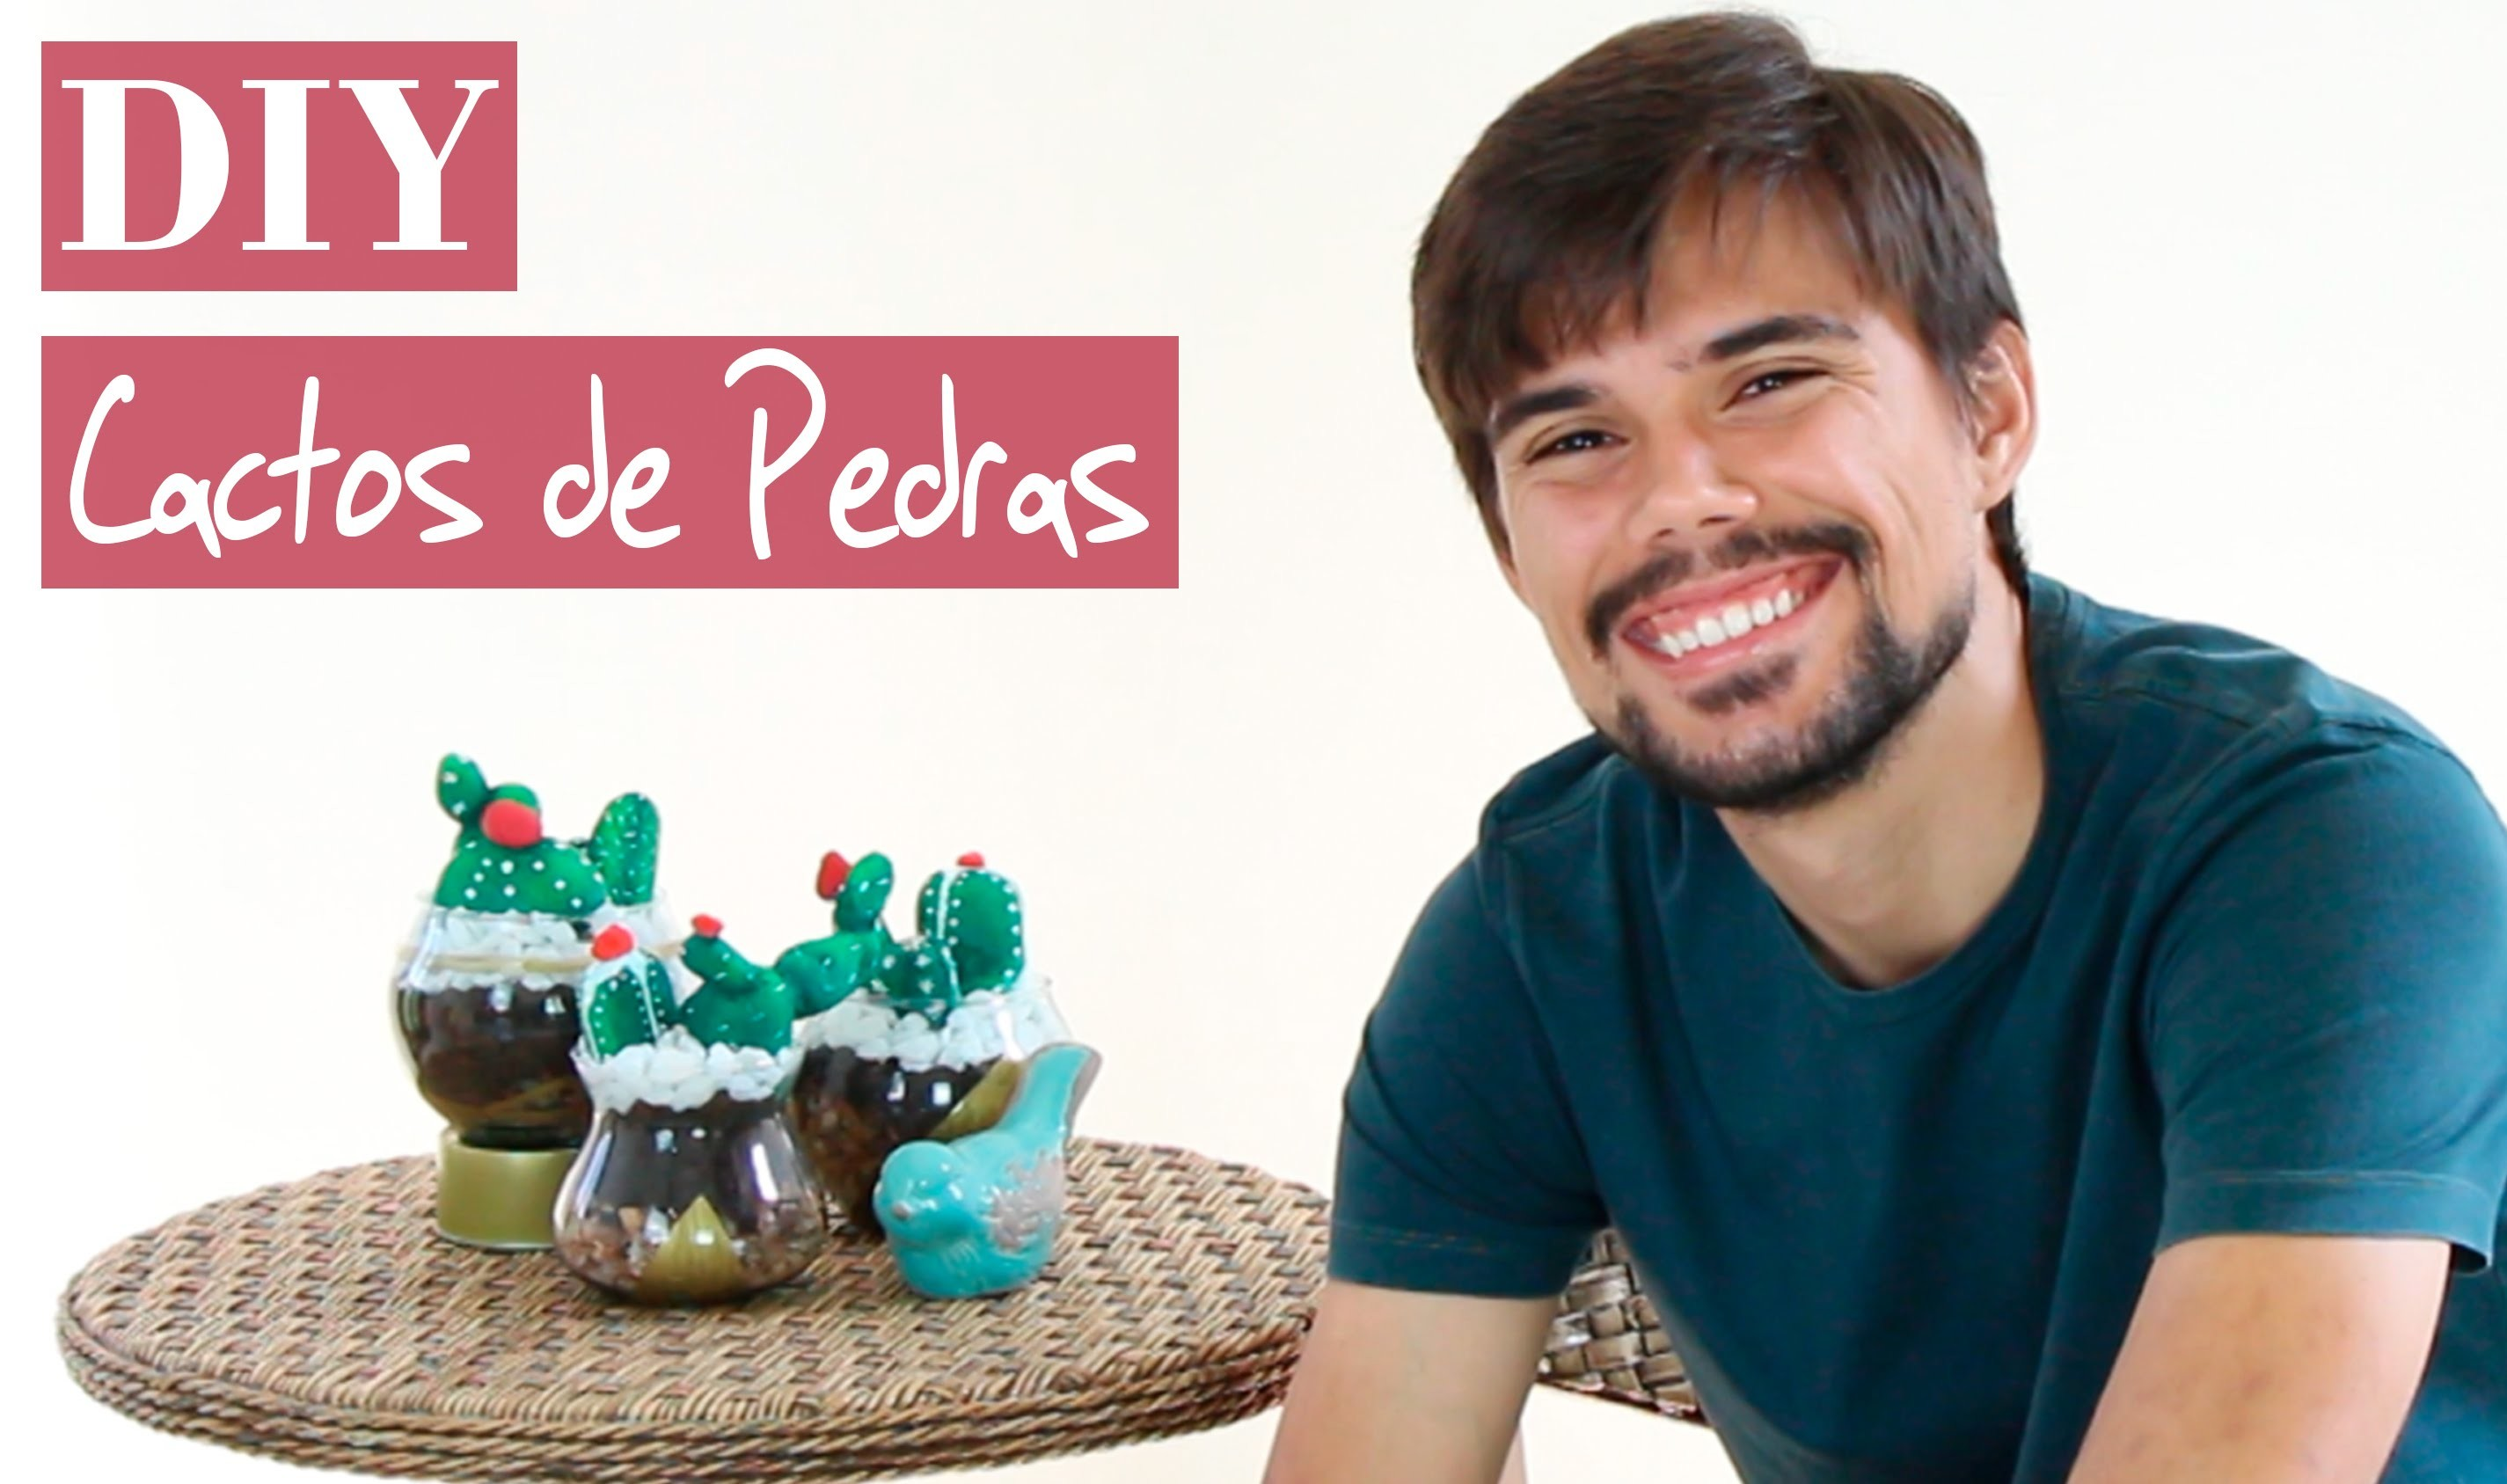 DIY | Como fazer Cactos de Pedras | Tutorial | How to do stone cactus =)